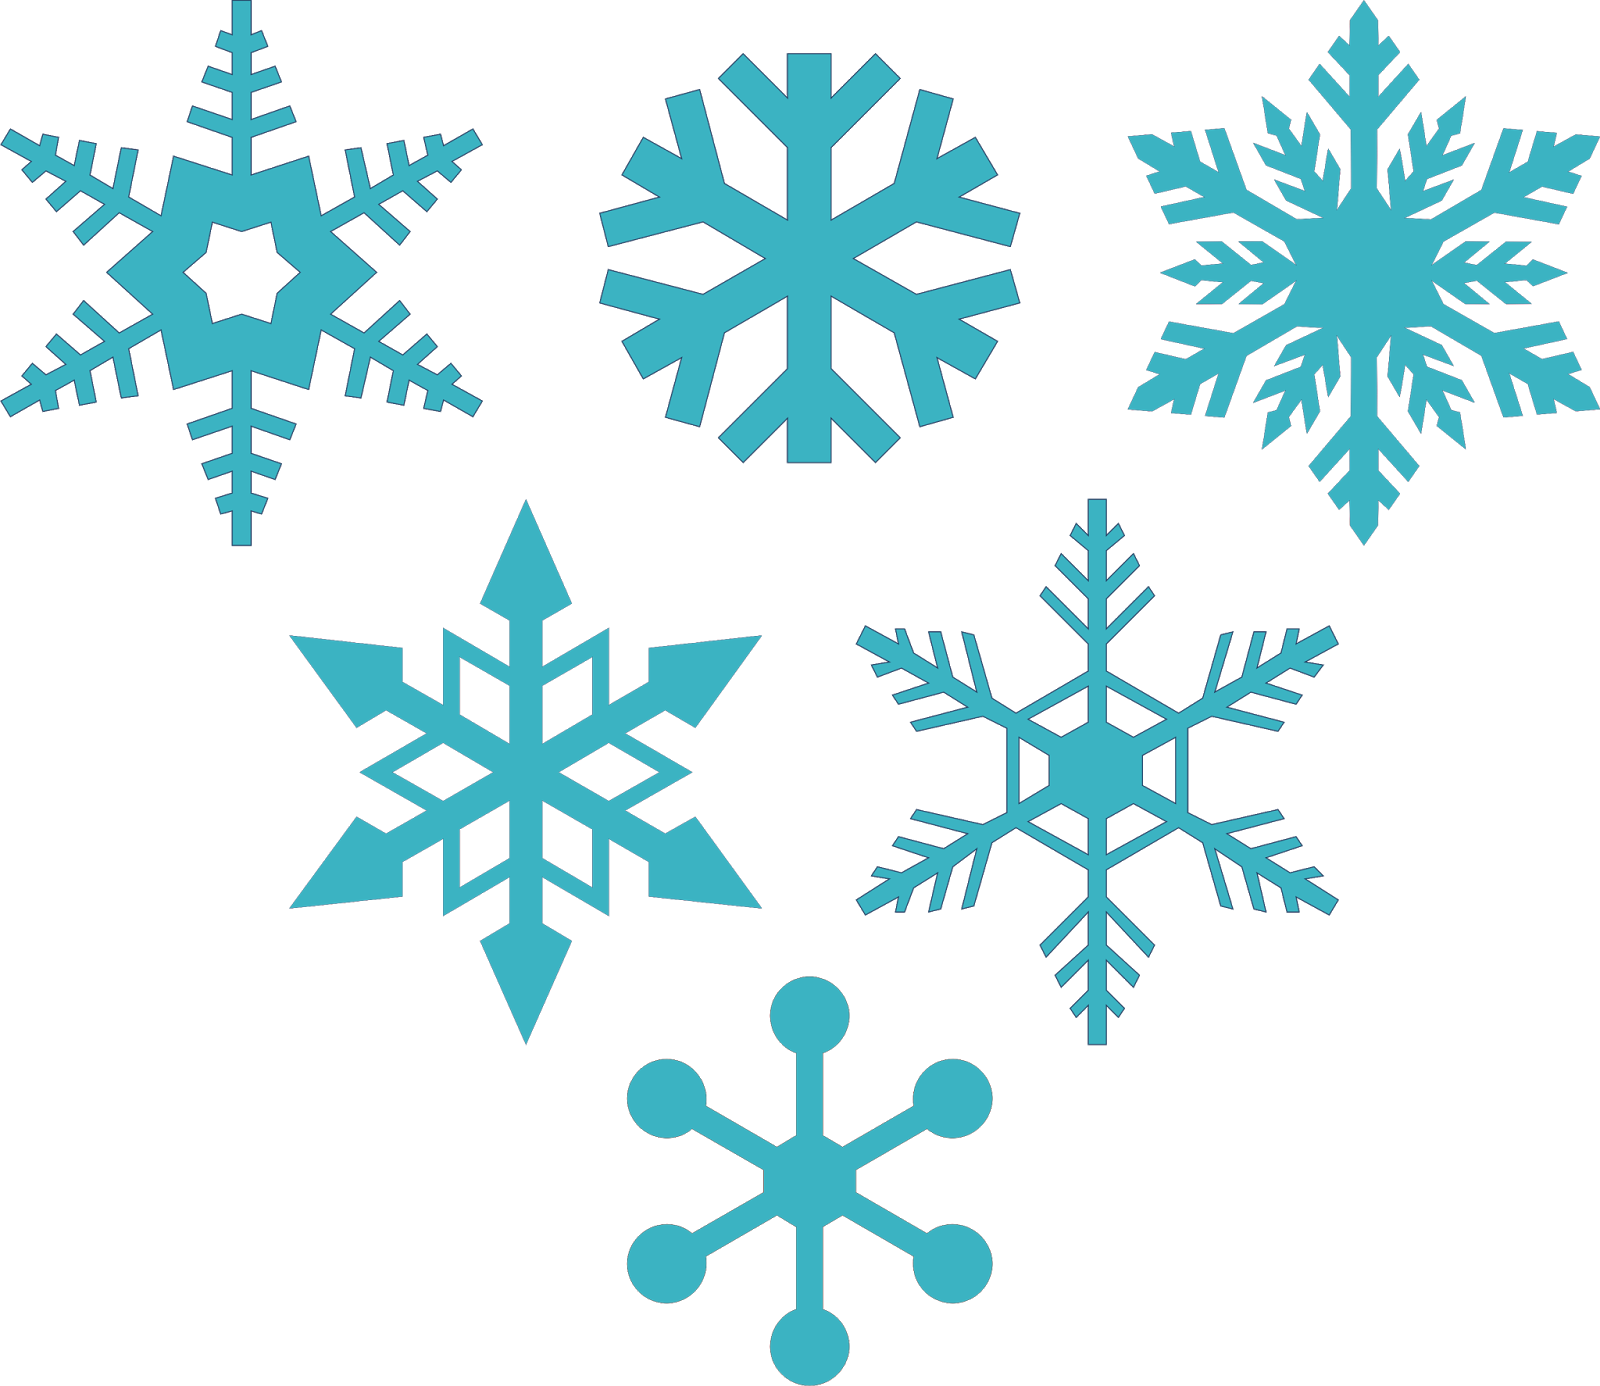 Snowflake clipart silhouette svg black and white library Free Snowflake Images (65+) svg black and white library